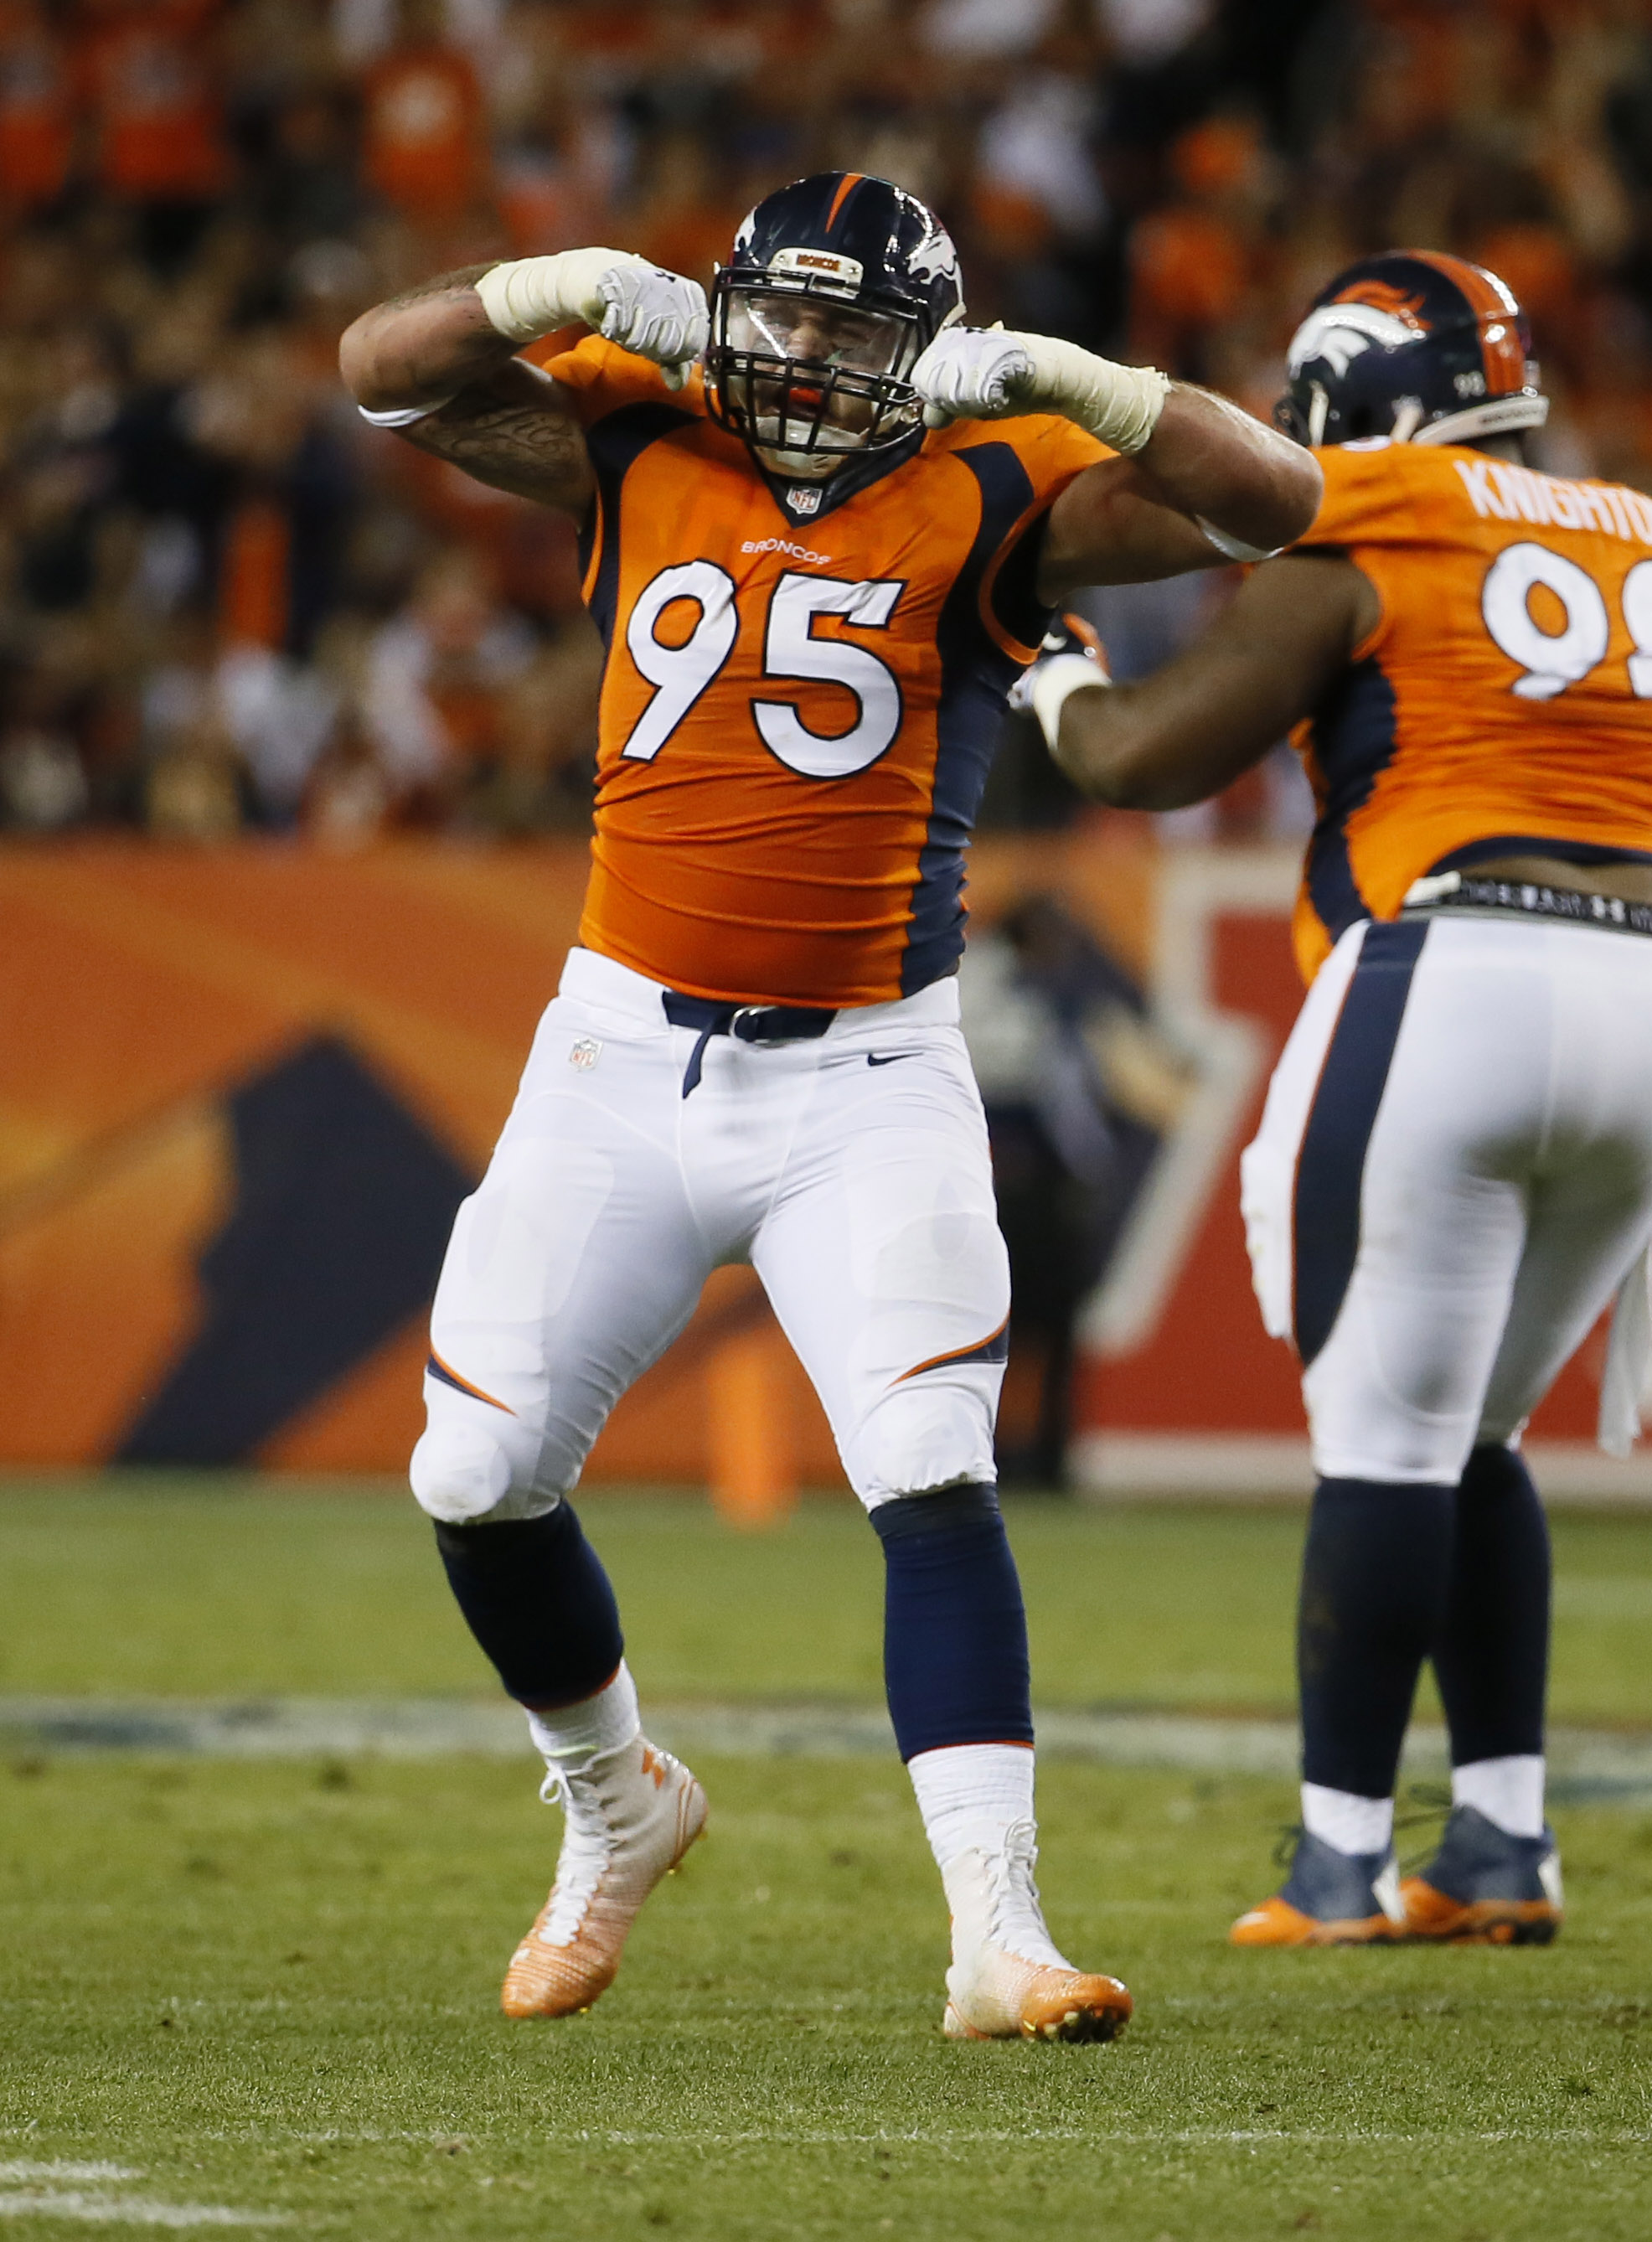 Denver Broncos defensive end Derek Wolfe (95) celebrates a stop against the San Diego Chargers during the first half of an NFL football game, Thursday, Oct. 23, 2014, in Denver. (AP Photo/Jack Dempsey)